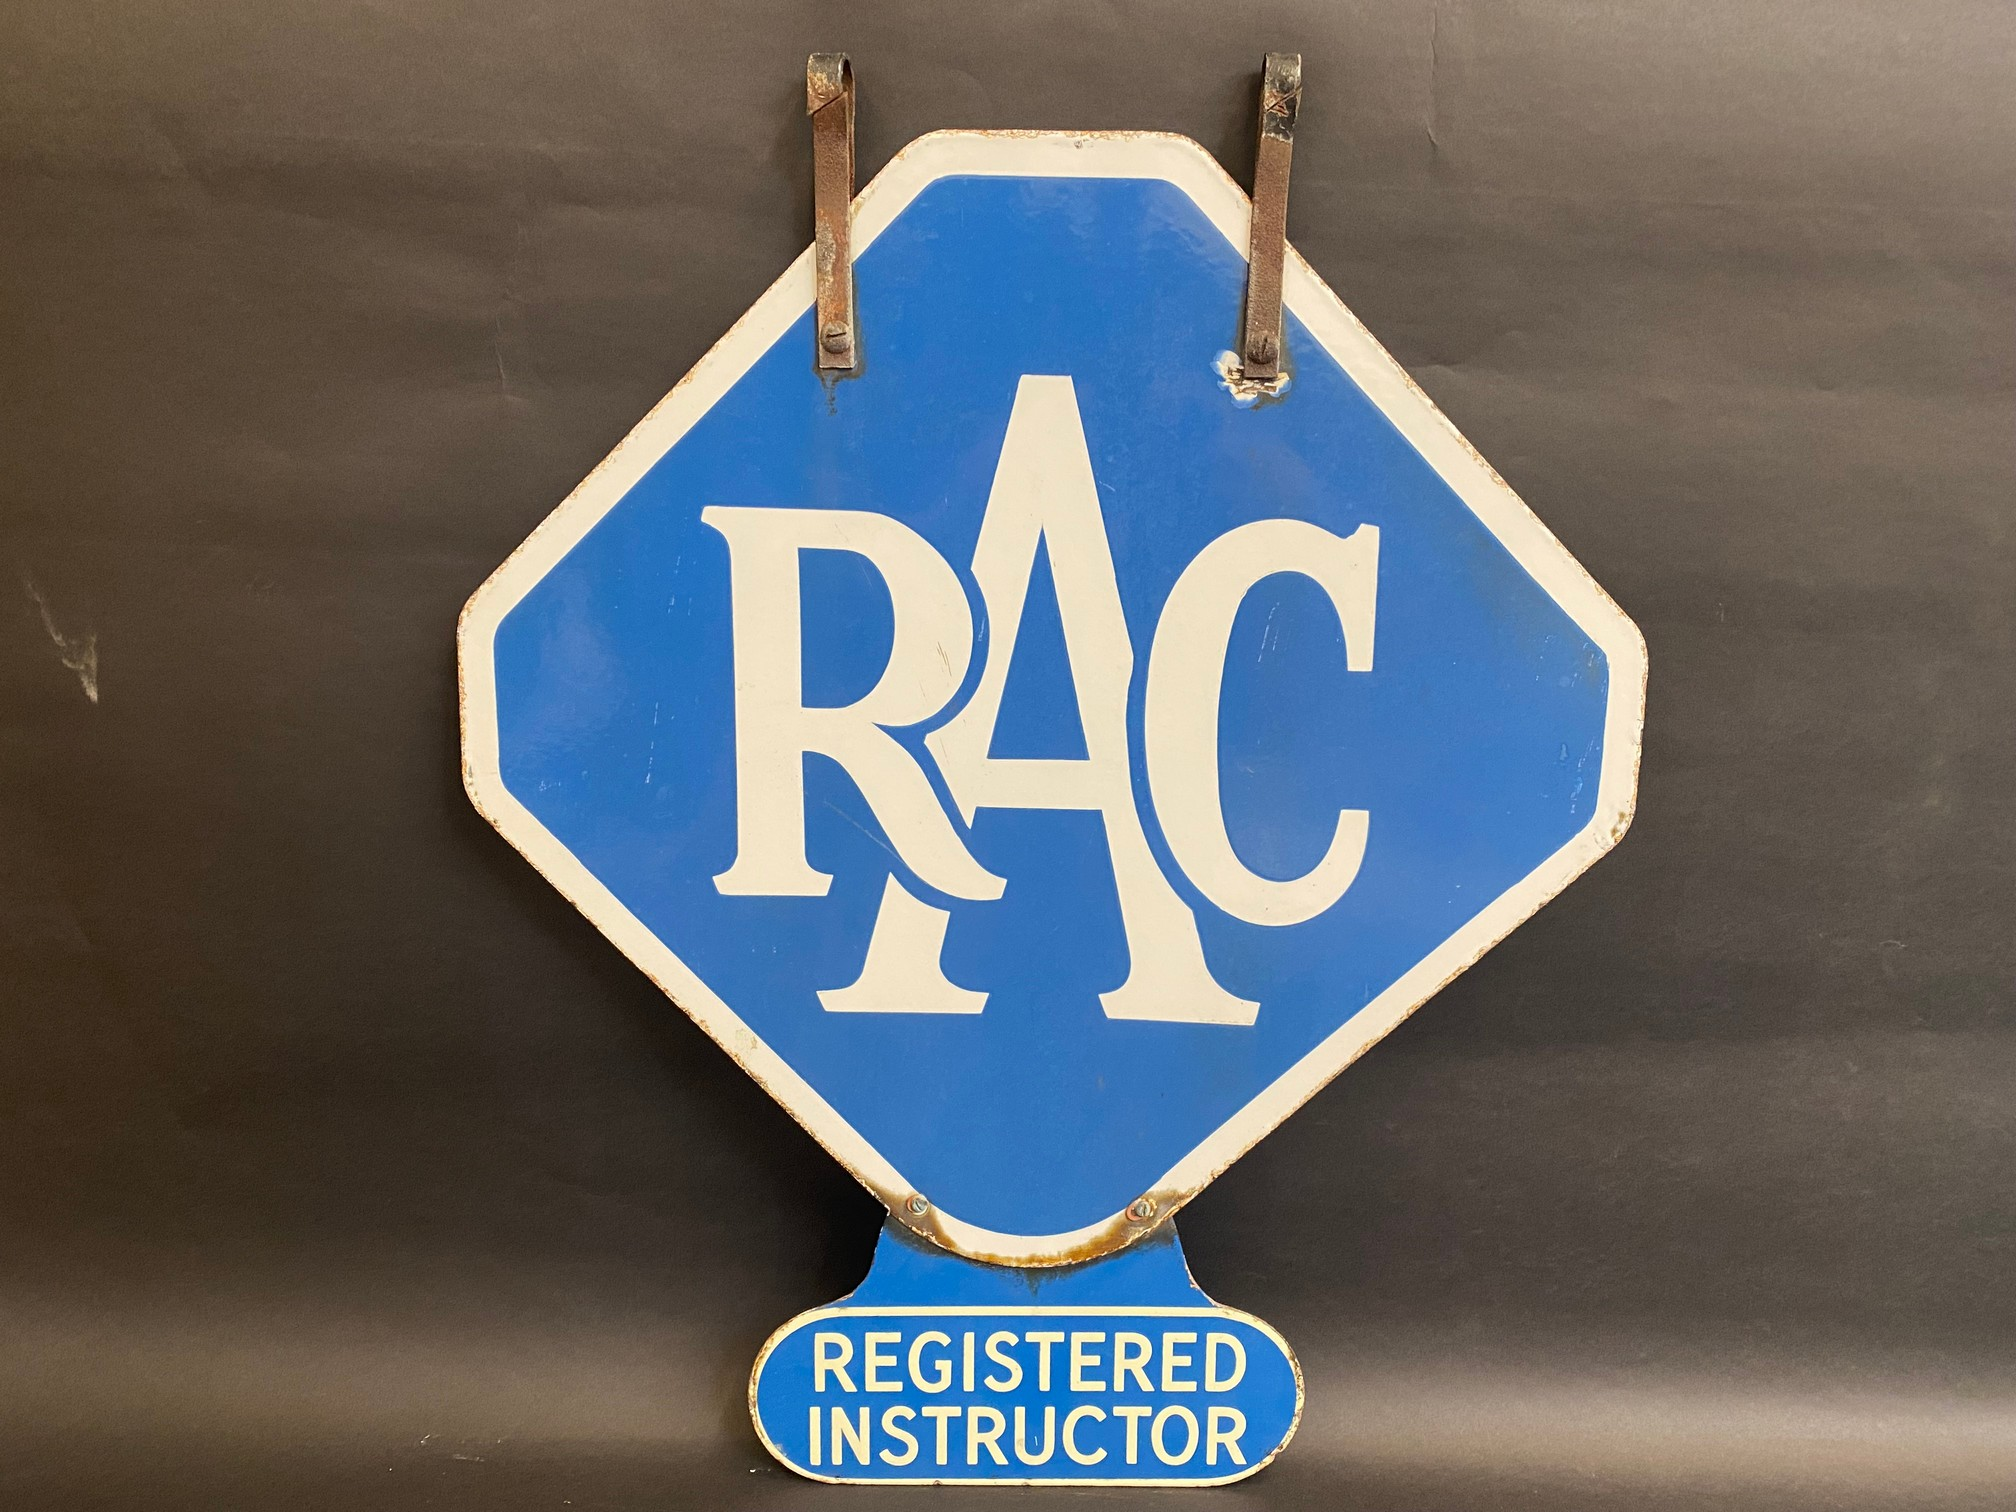 An RAC lozenge shaped double sided enamel sign with hanging hooks and a 'Registered Instructor' - Image 5 of 8